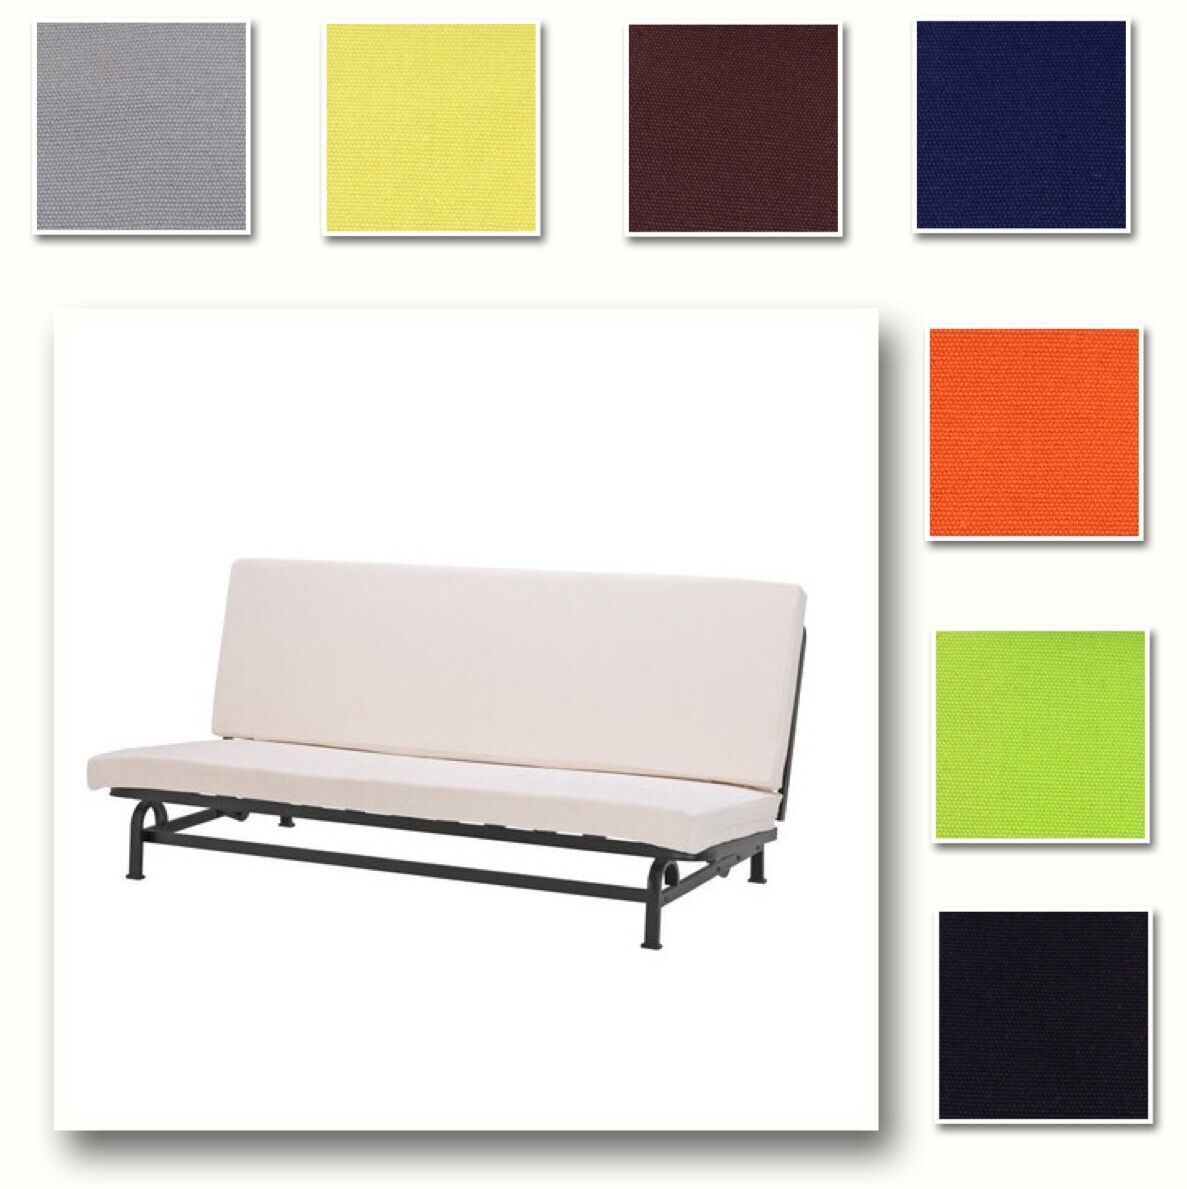 Divano Letto Ikea Exarby.Custom Made Cover Fits Ikea Exarby Sofa Bed Hidabed Replace Cover